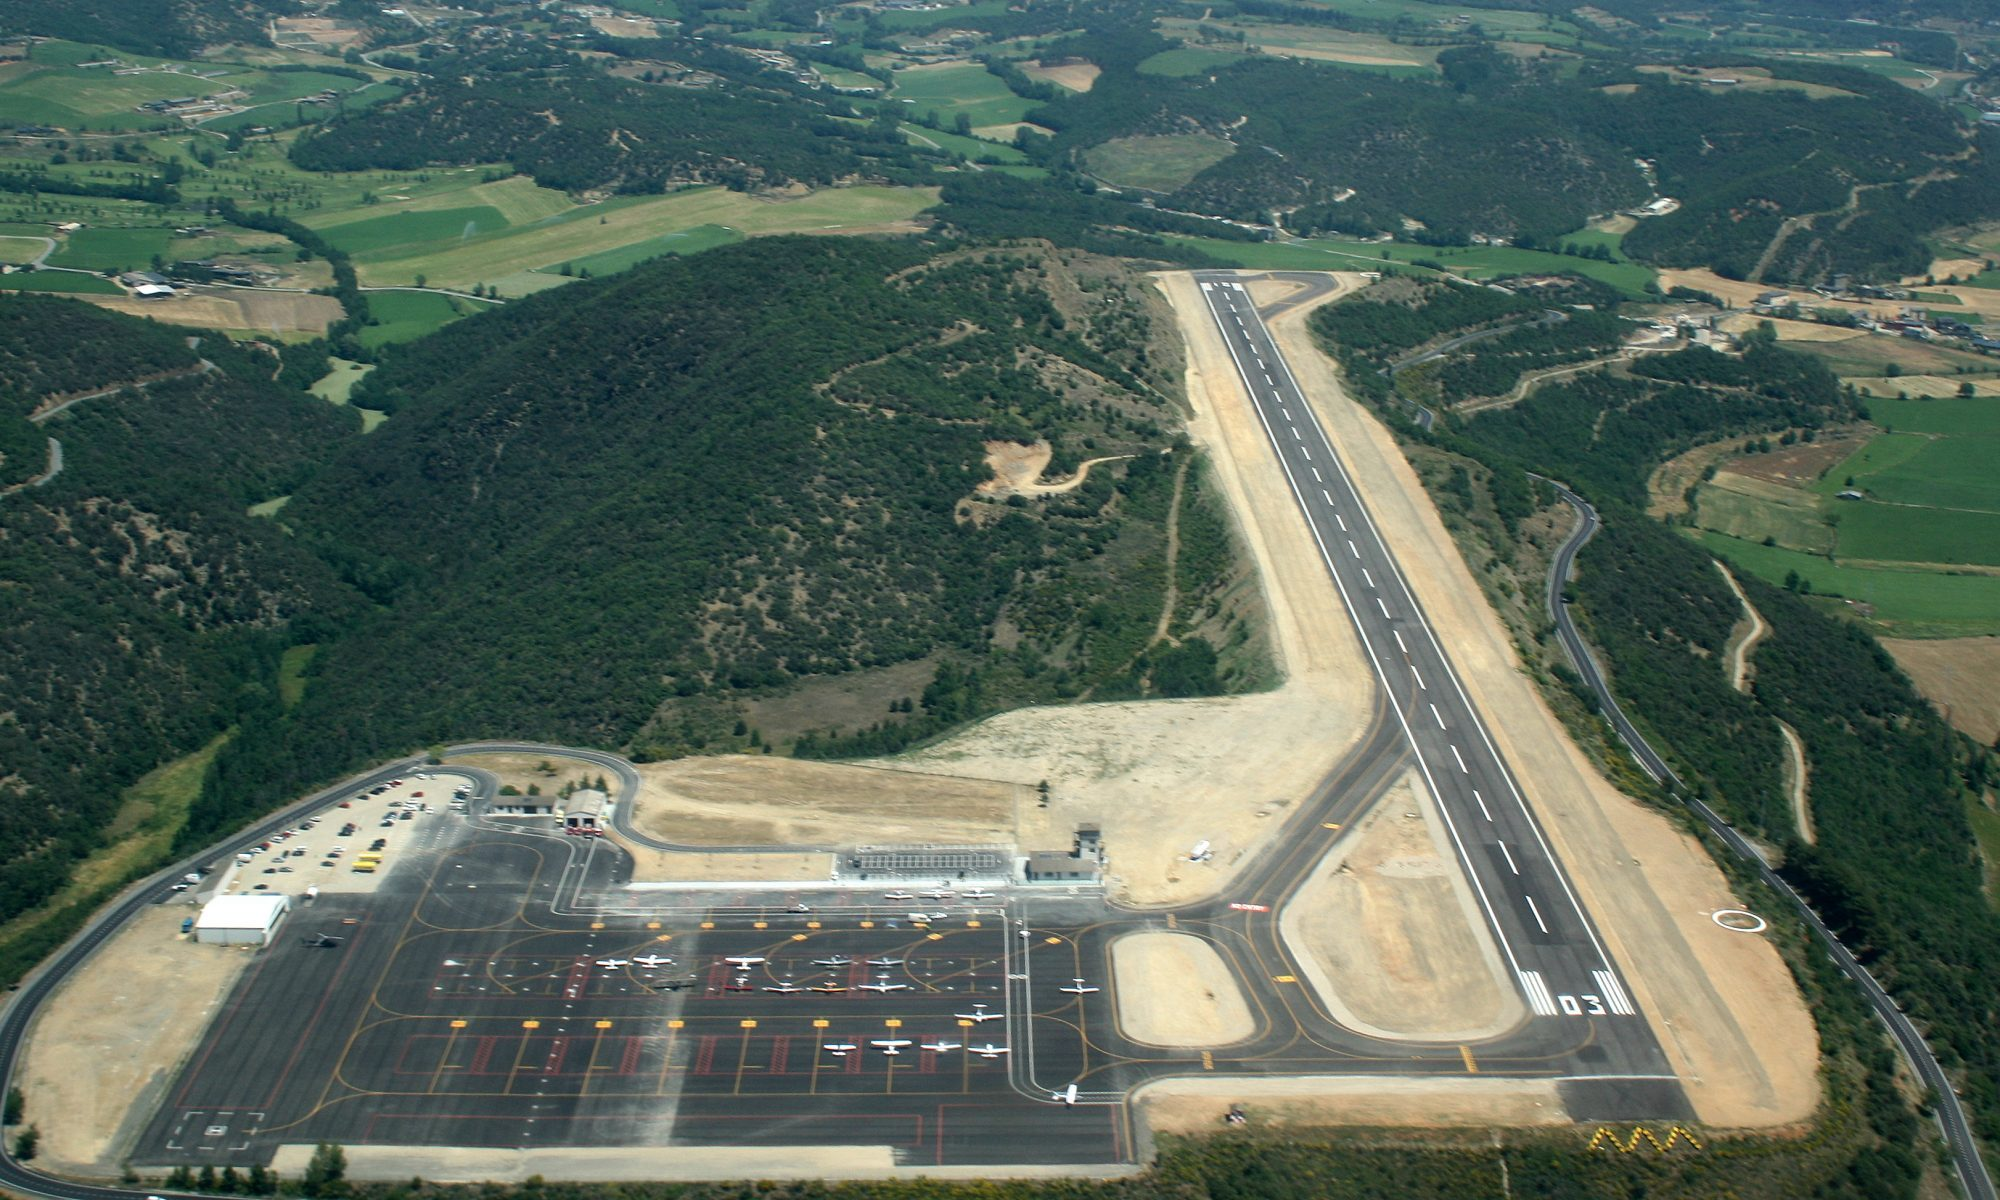 La Seu d'Urgell Airport in Catalunya, outside Andorra serves the Andorran airspace. The EFA claims that the failure of the GPS makes an airport essential in the country